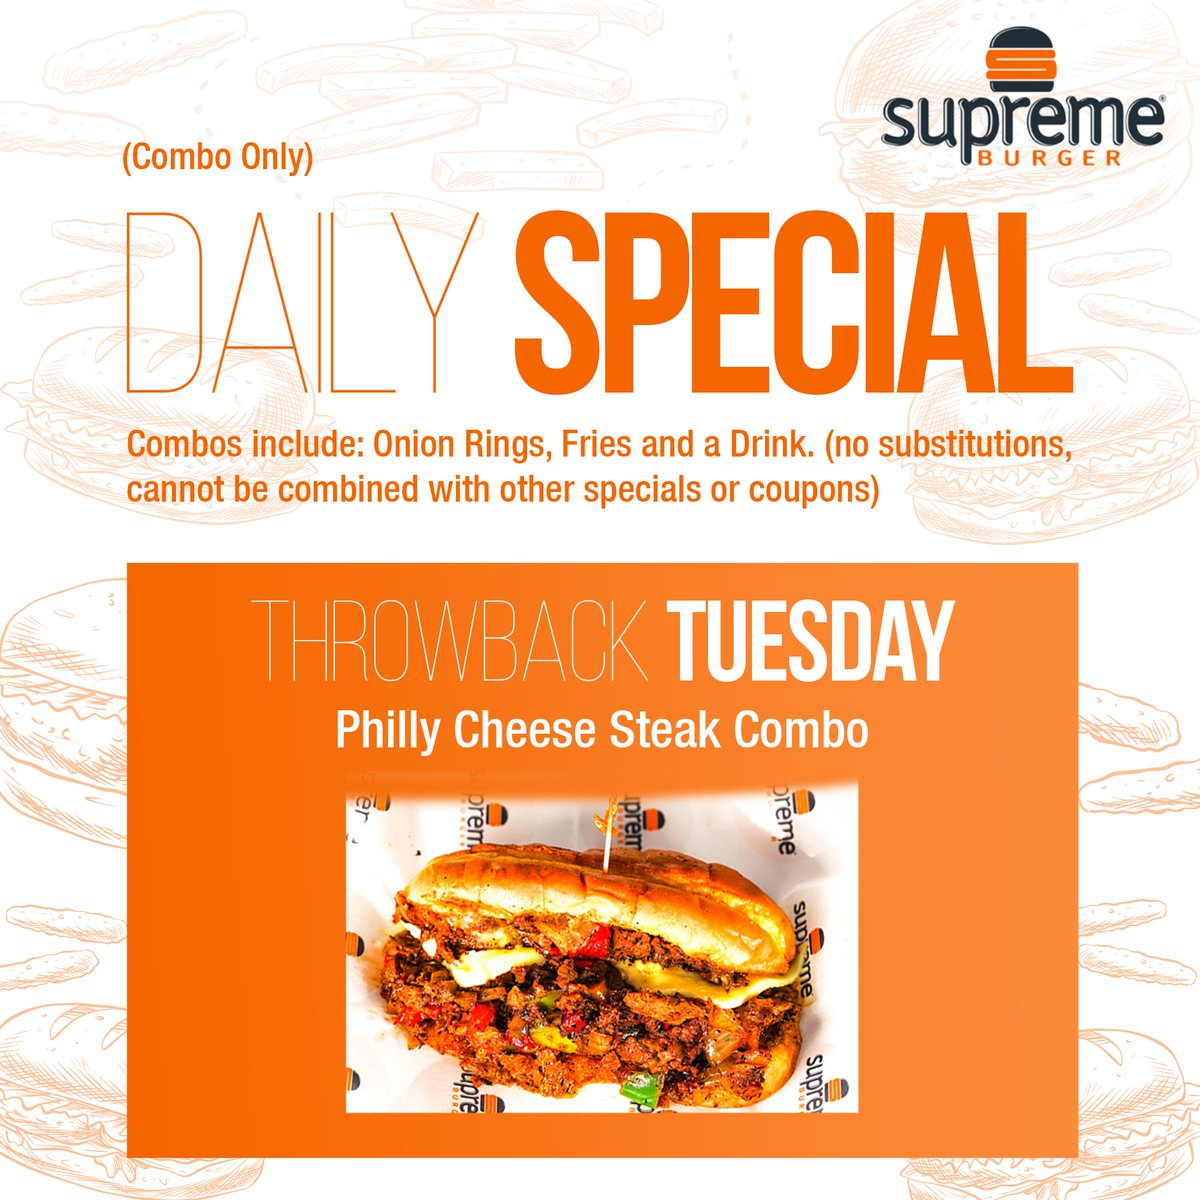 Today is Throwback Tuesday. Paying homage to our humble beginnings and bringing back the Philly Cheese Steak, supreme style. Just ask for the Daily Special for $12.99. #PhillyCheeseSteak #DailySpecial #Restaurant #Thursday #Halal